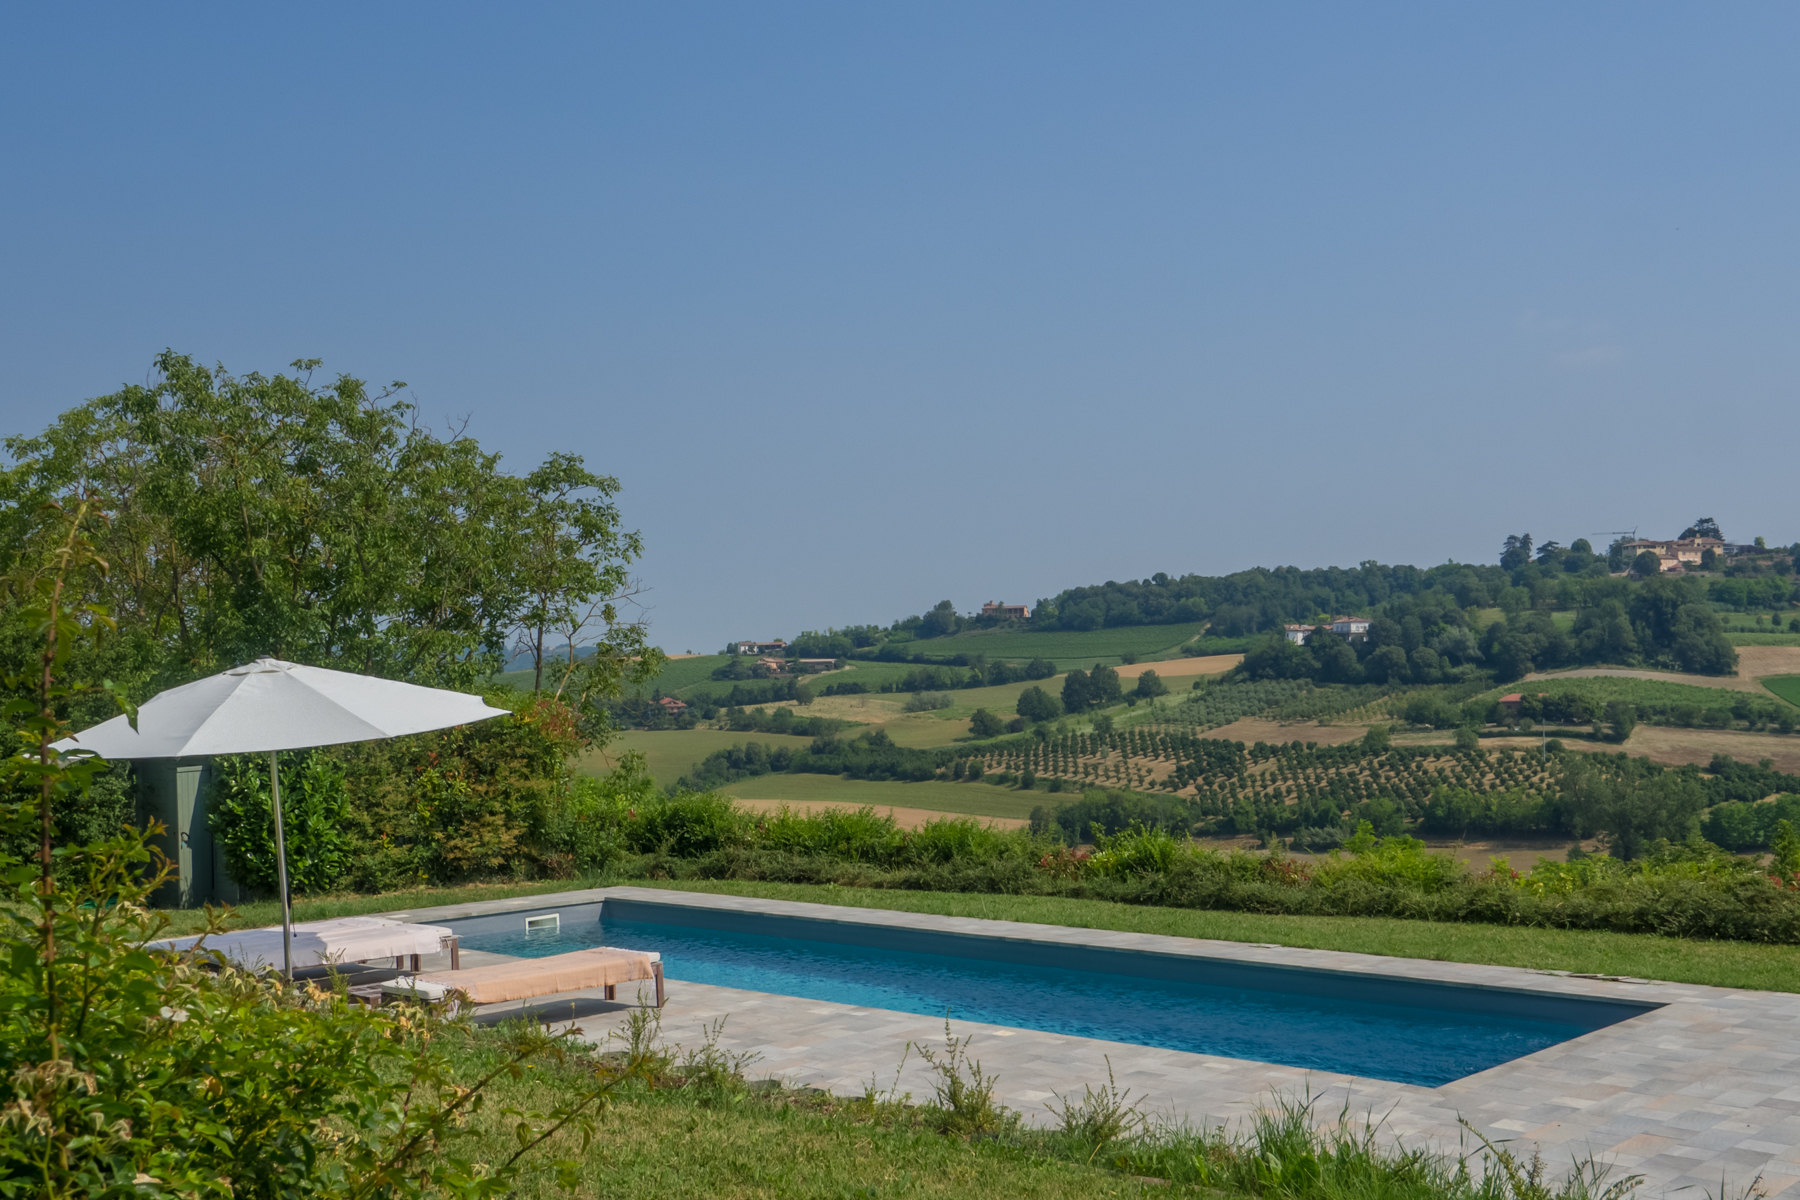 Single Family Homes for Sale at Charming country house nestled in the hills of Monferrato region Moncalvo, Asti Italy